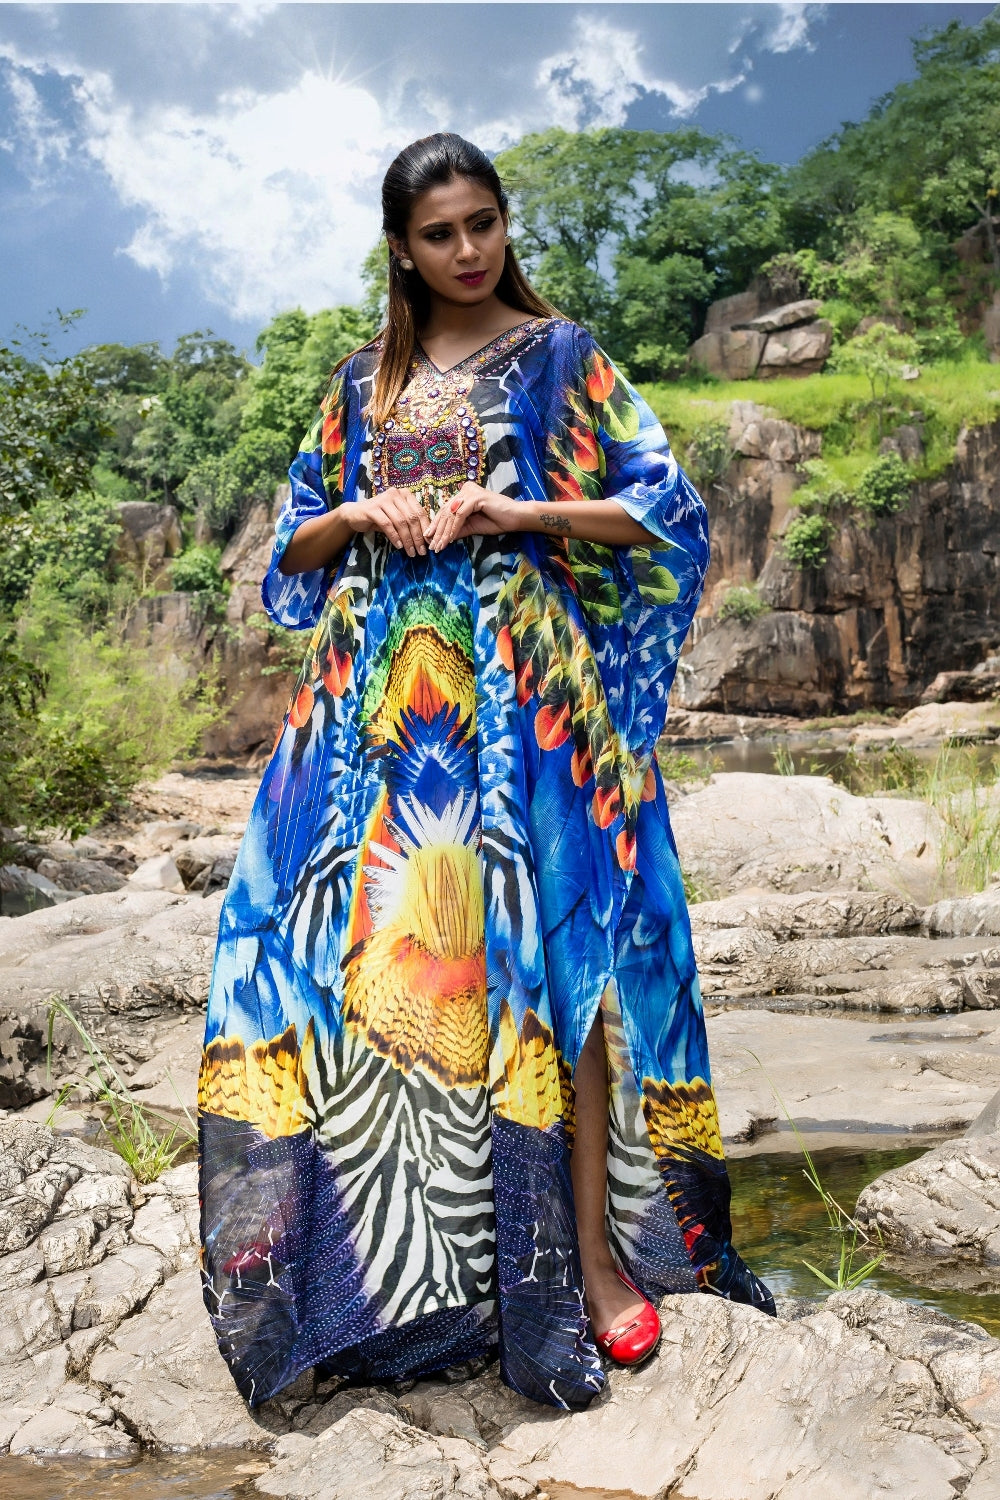 Attractive Feathers print featuring zebra patches with multicolored embellishments on Beach Cover ups - Silk kaftan